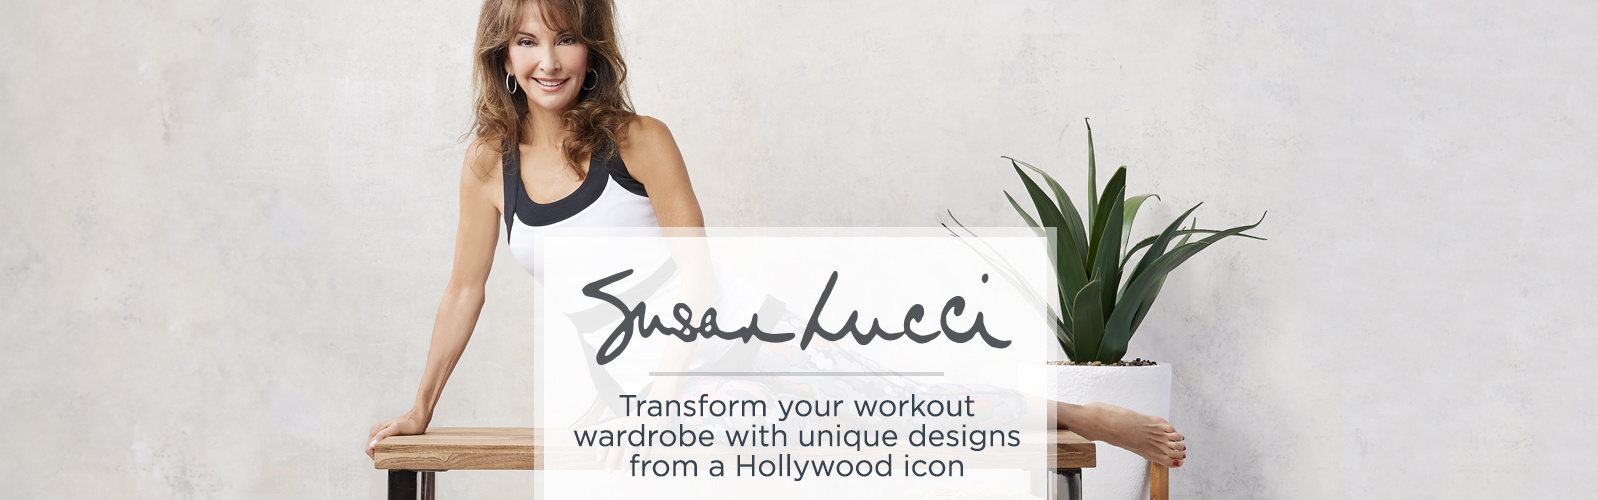 Susan Lucci Collection. Transform your workout wardrobe with unique designs from a Hollywood icon.